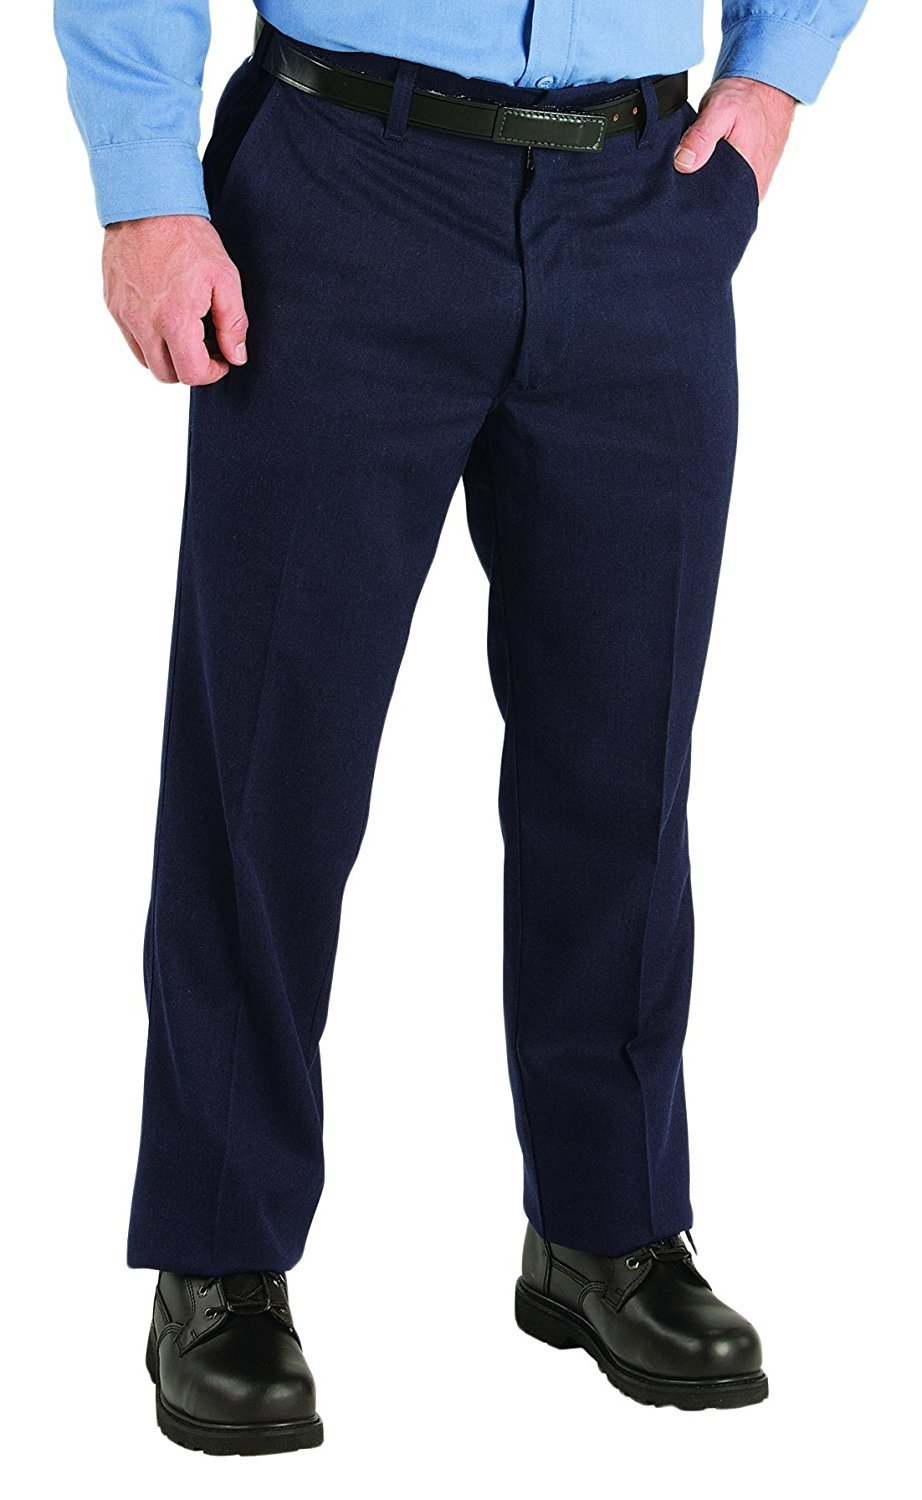 TOPPS SAFETY PA70-5605-42 Nomex Pants 6.0 N 42